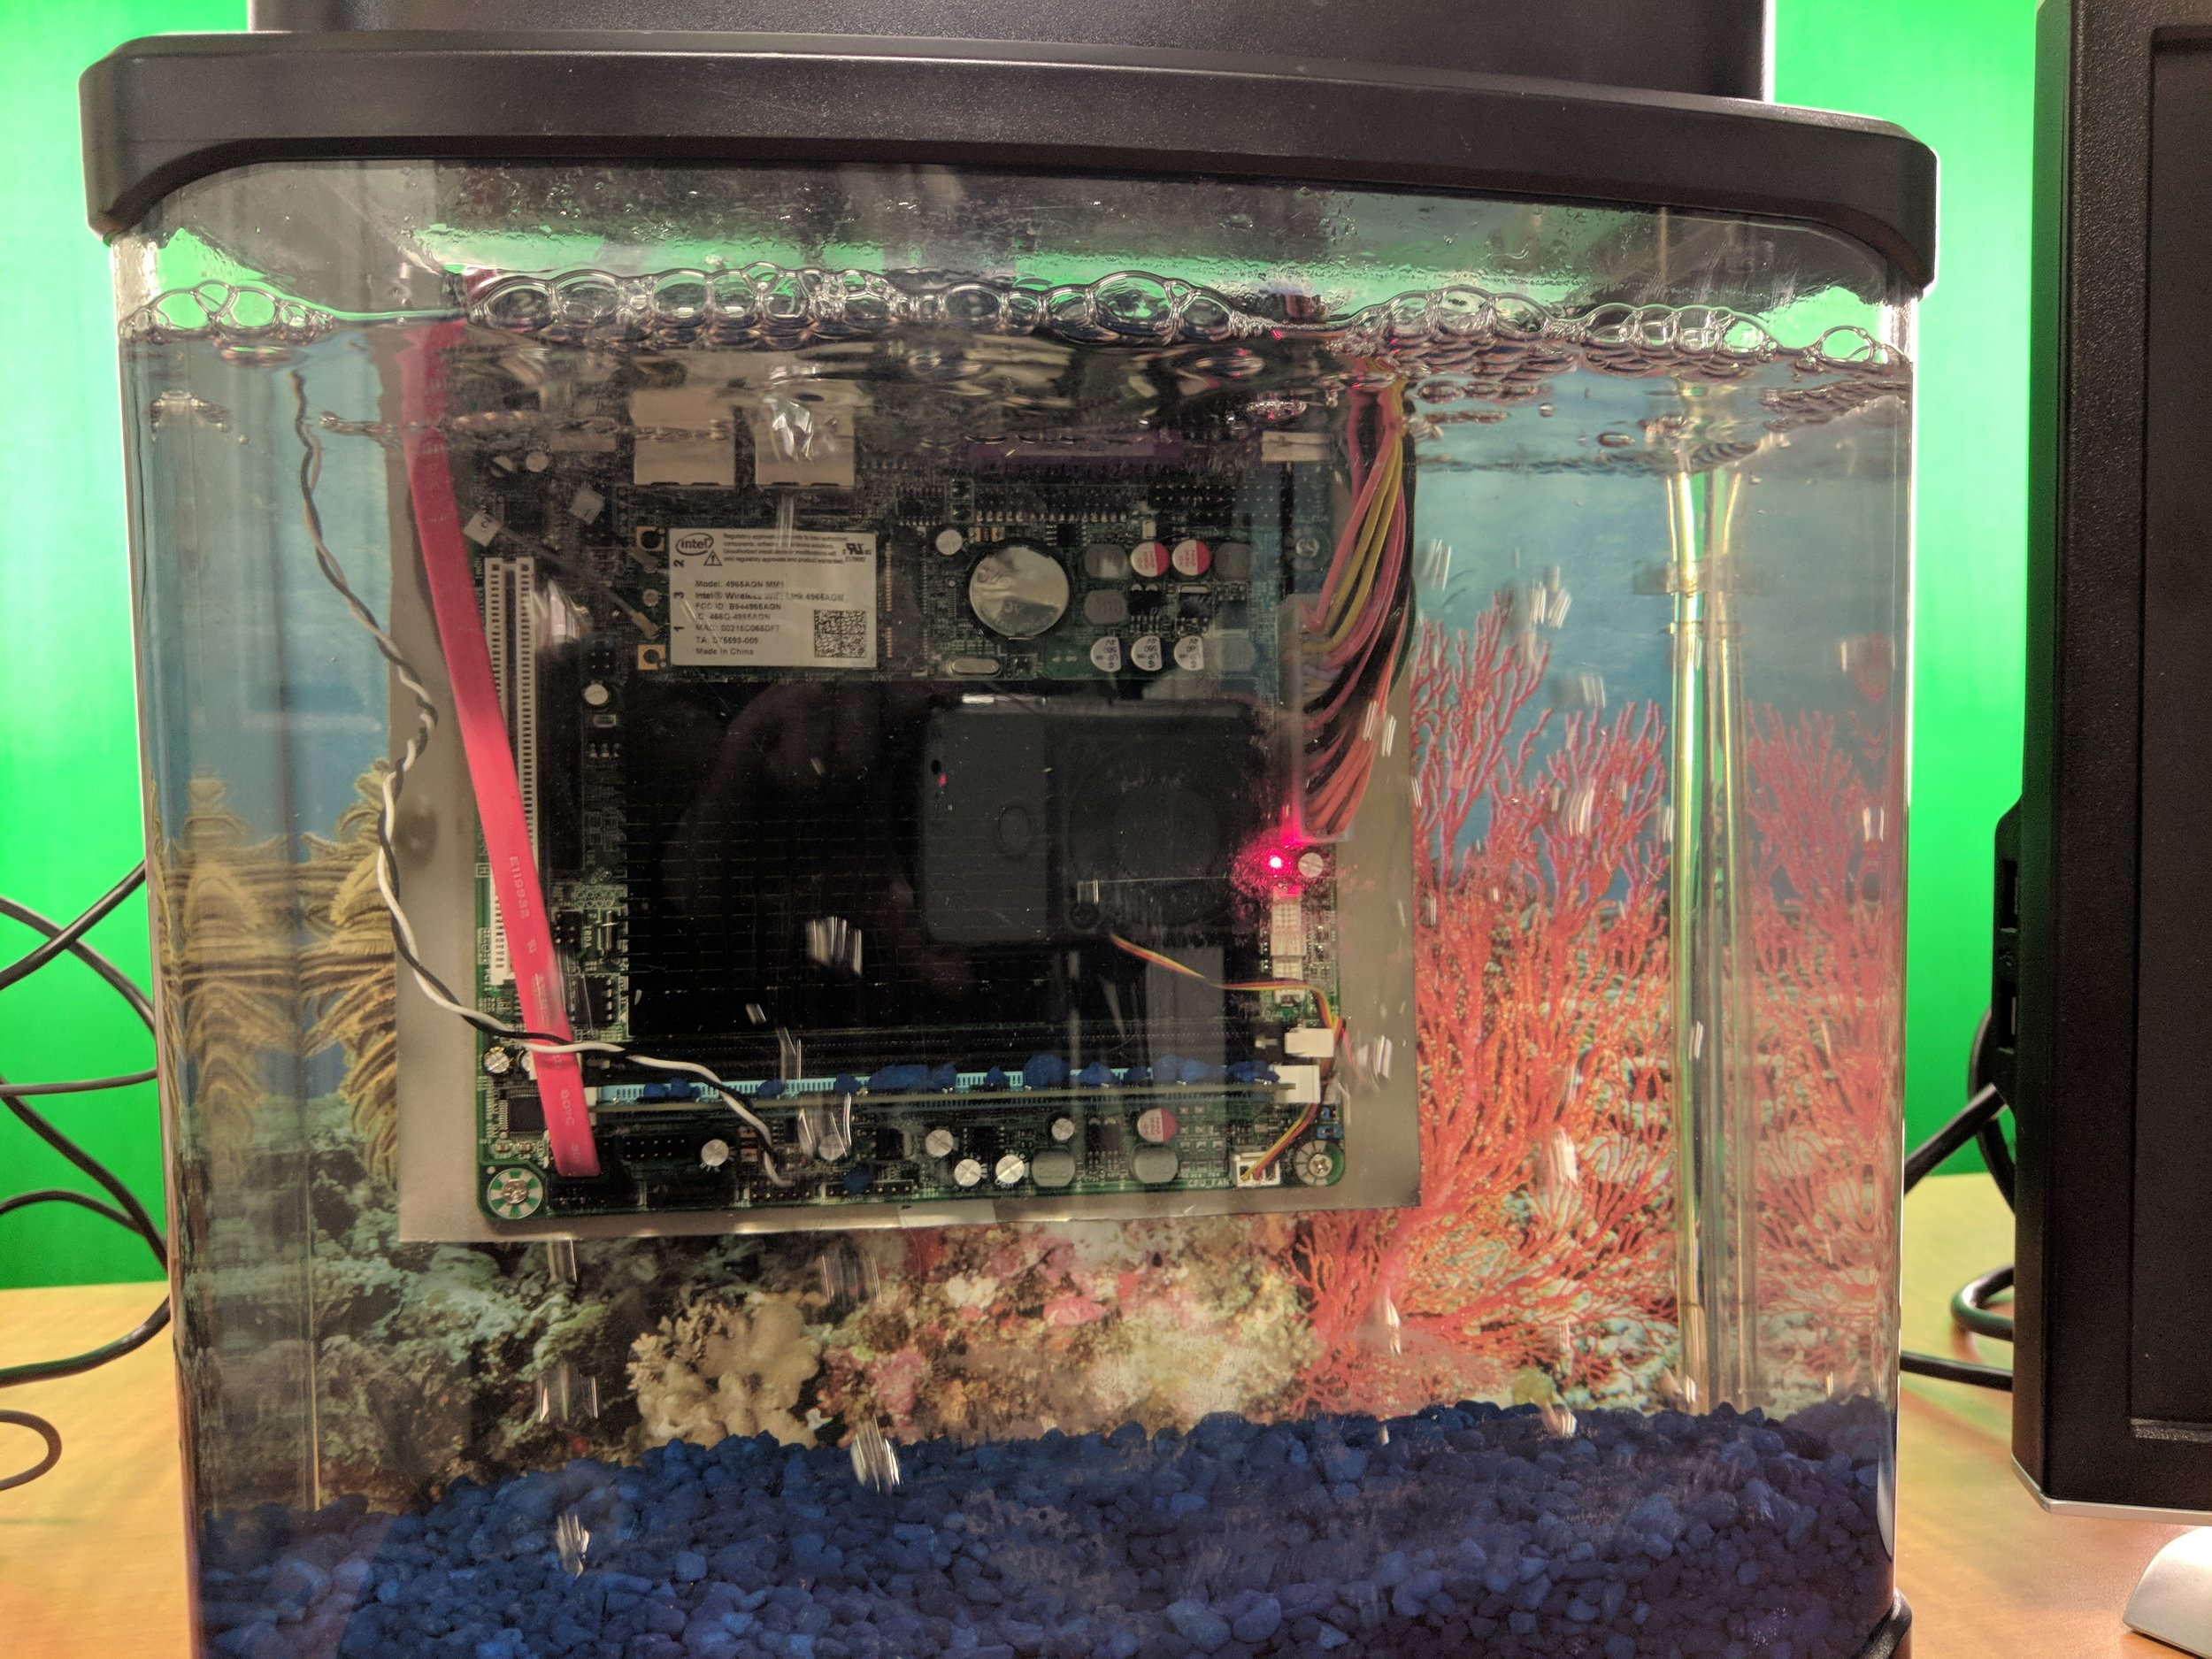 Brad took his computer and put it in a fish tank full of baby oil. It works! The oil helps dissipate the heat, although this was just for fun. Obviously, the computer also ran fine when it was not in baby oil.